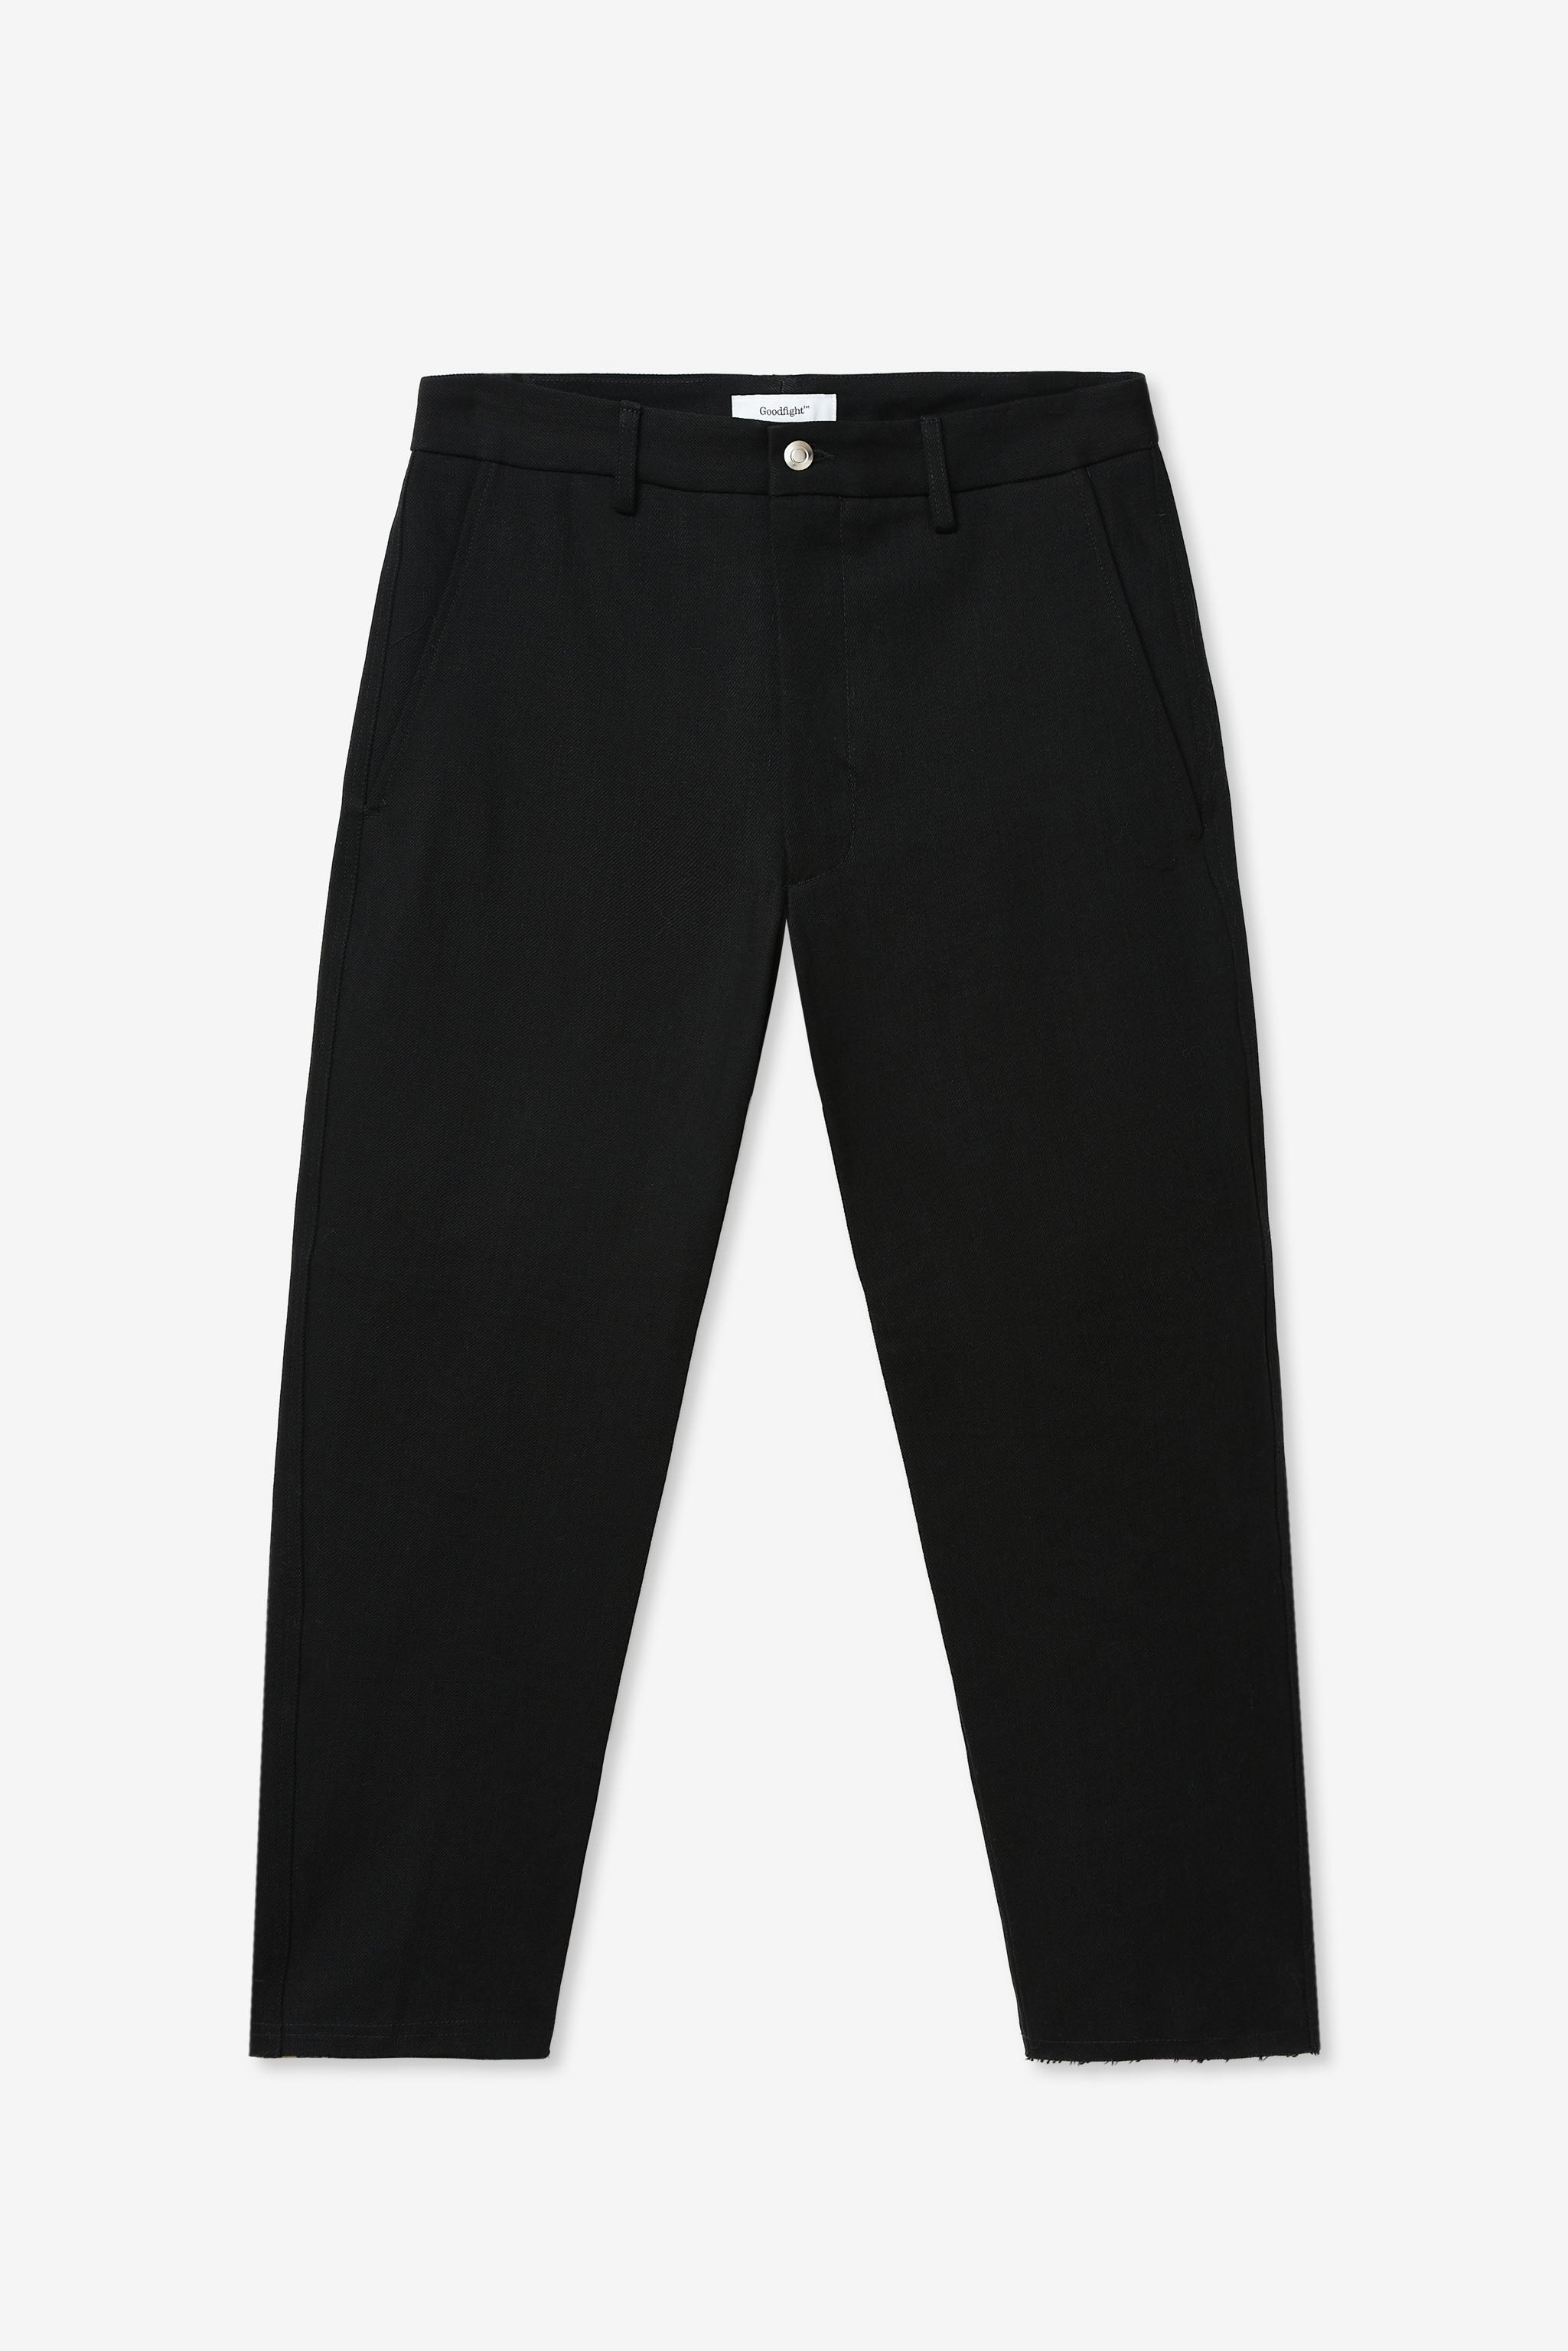 Goodfight Picadilly Denim Trouser Black